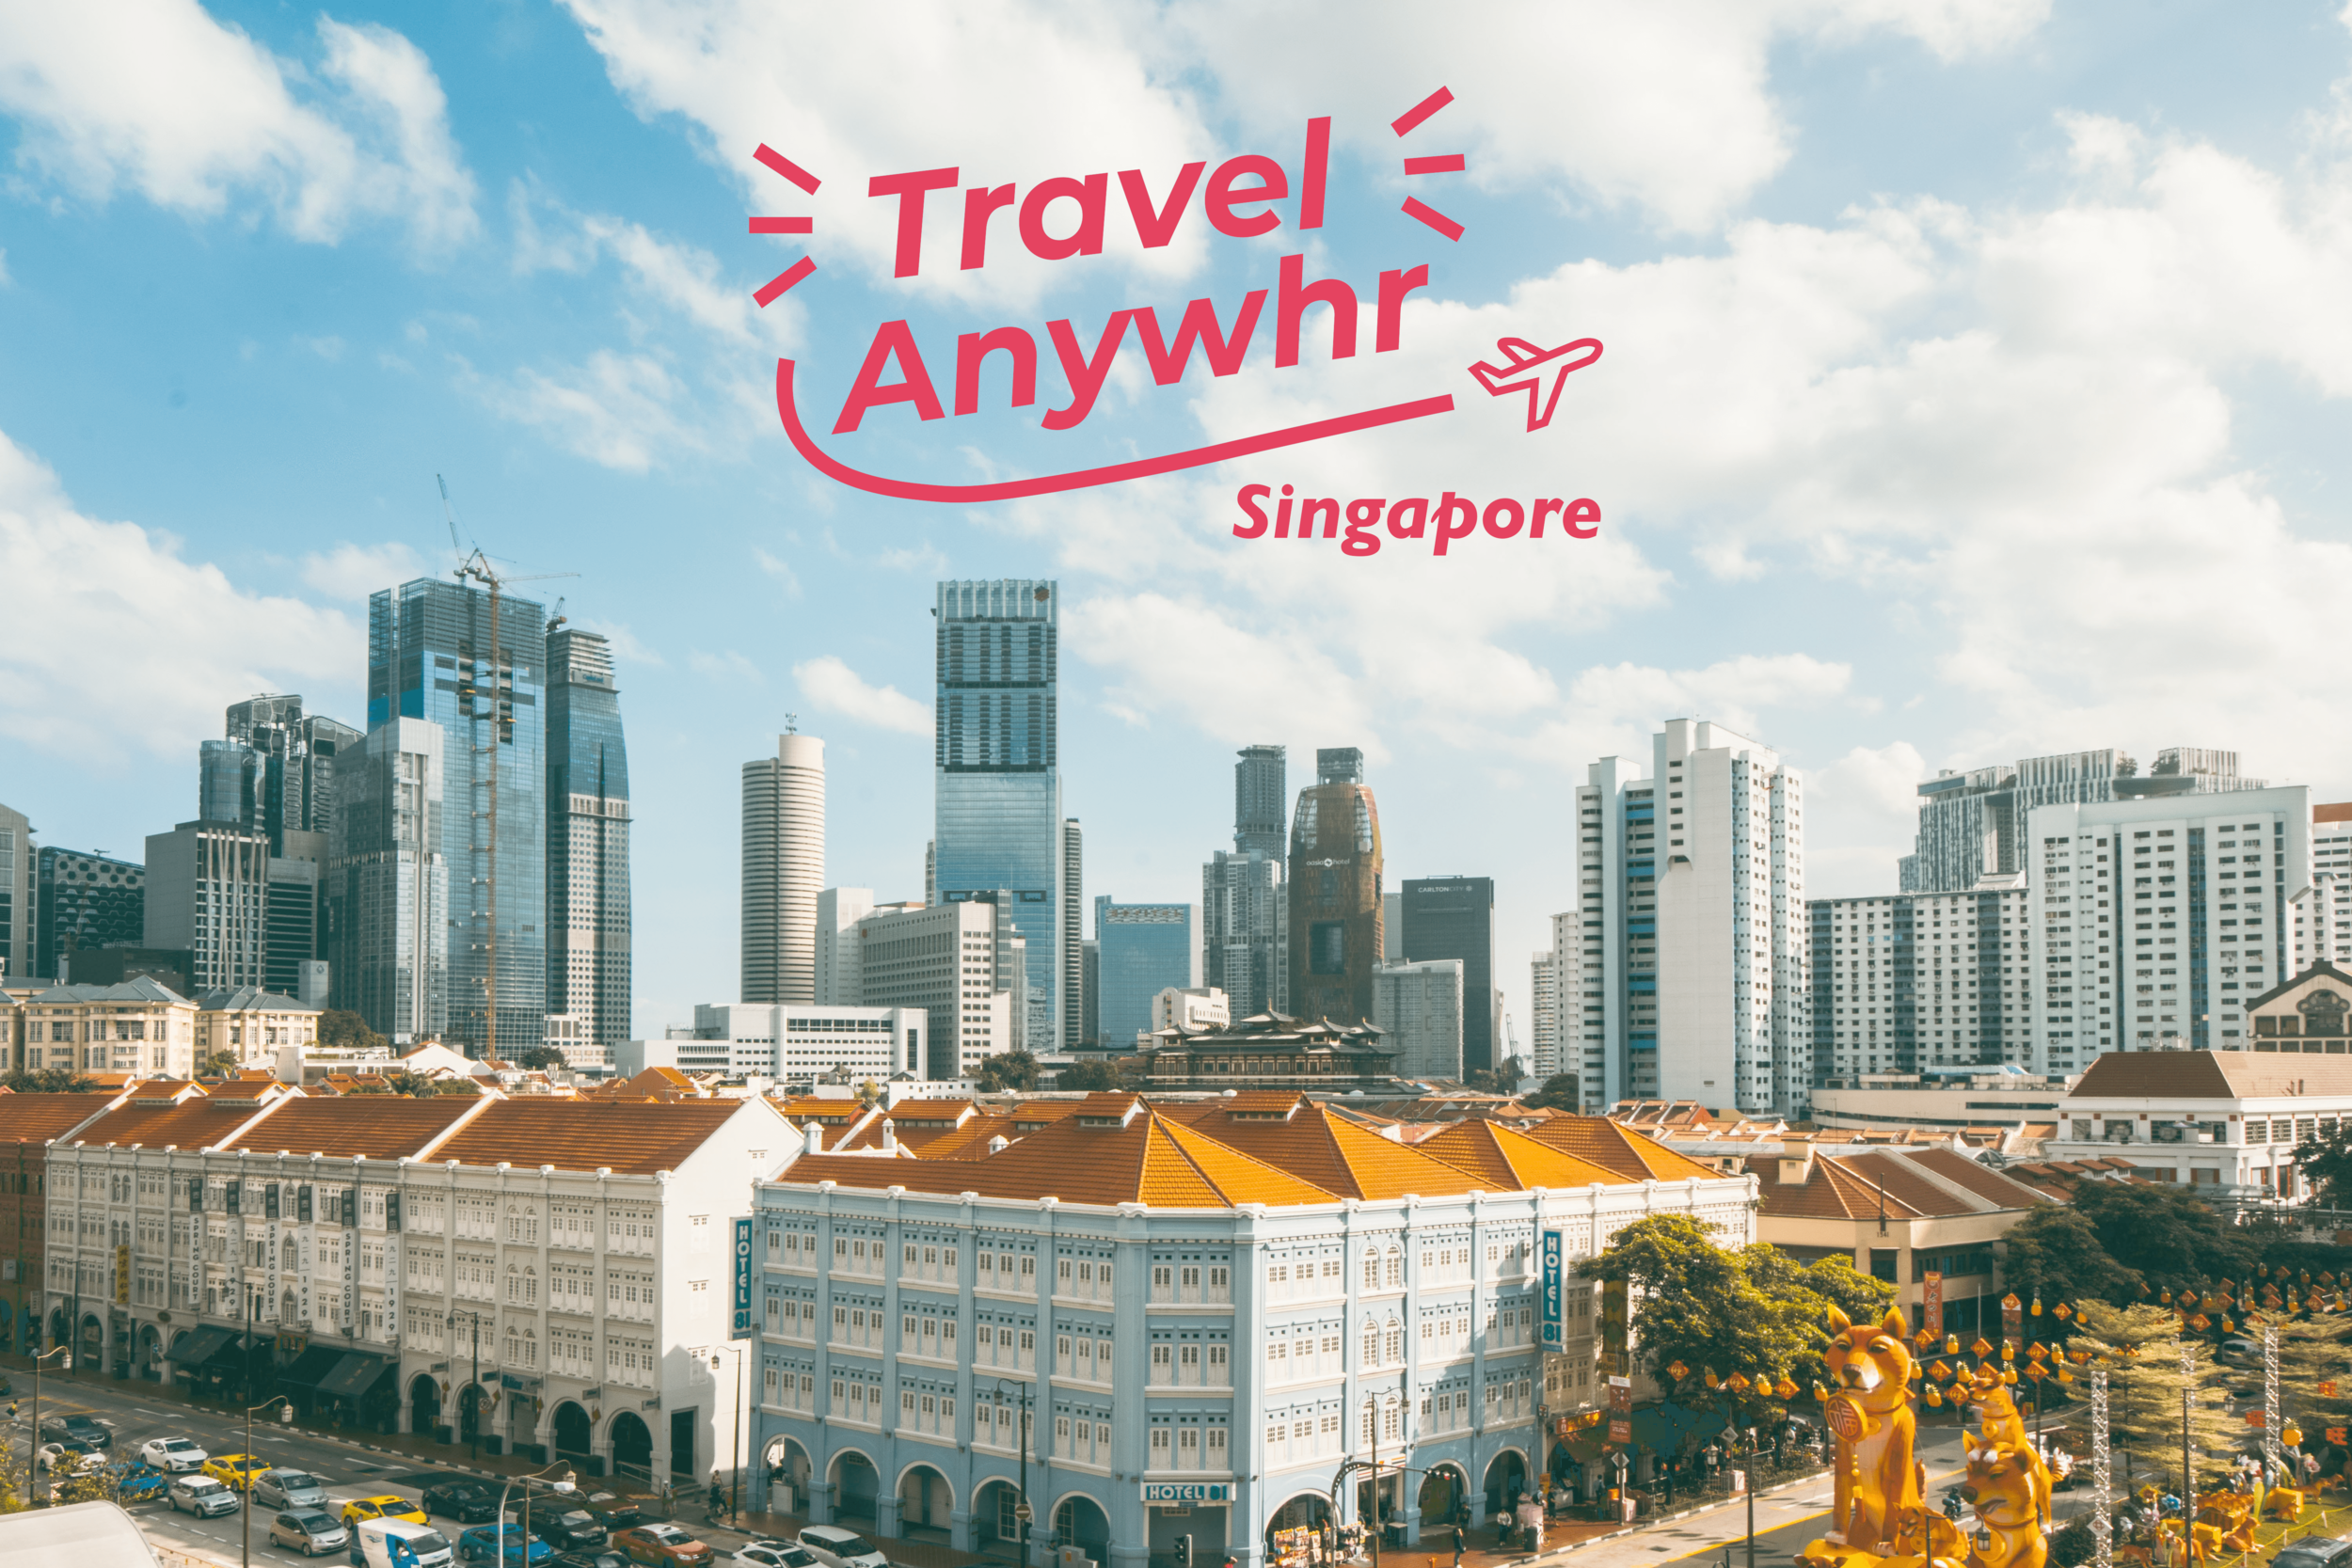 Travel Anywhr Singapore